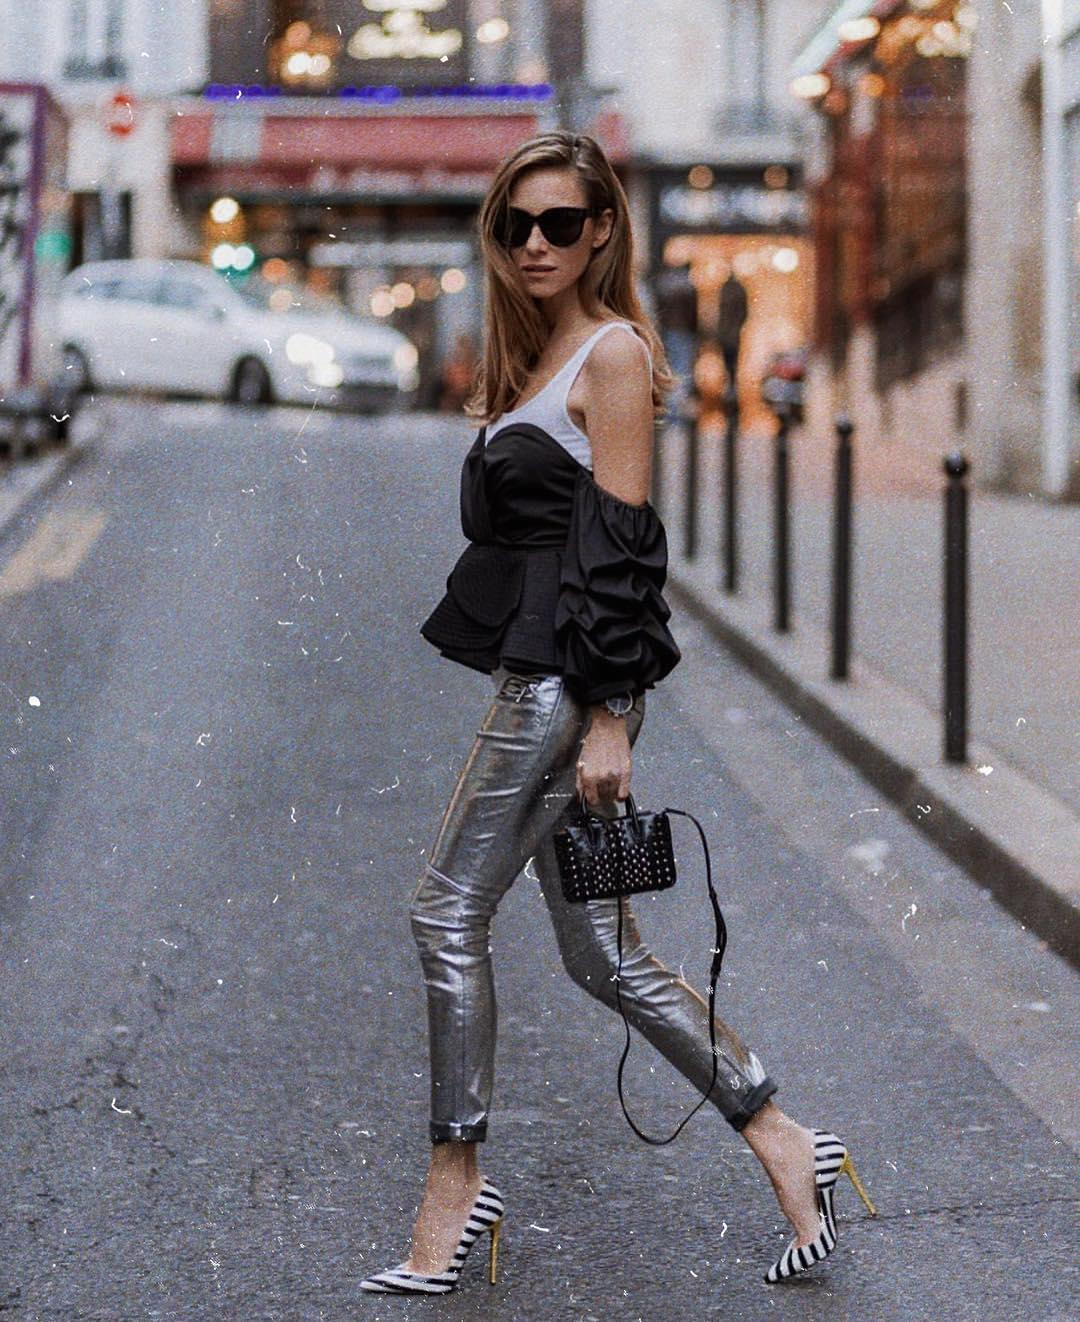 Metallic Silver Pants For Summer 2019